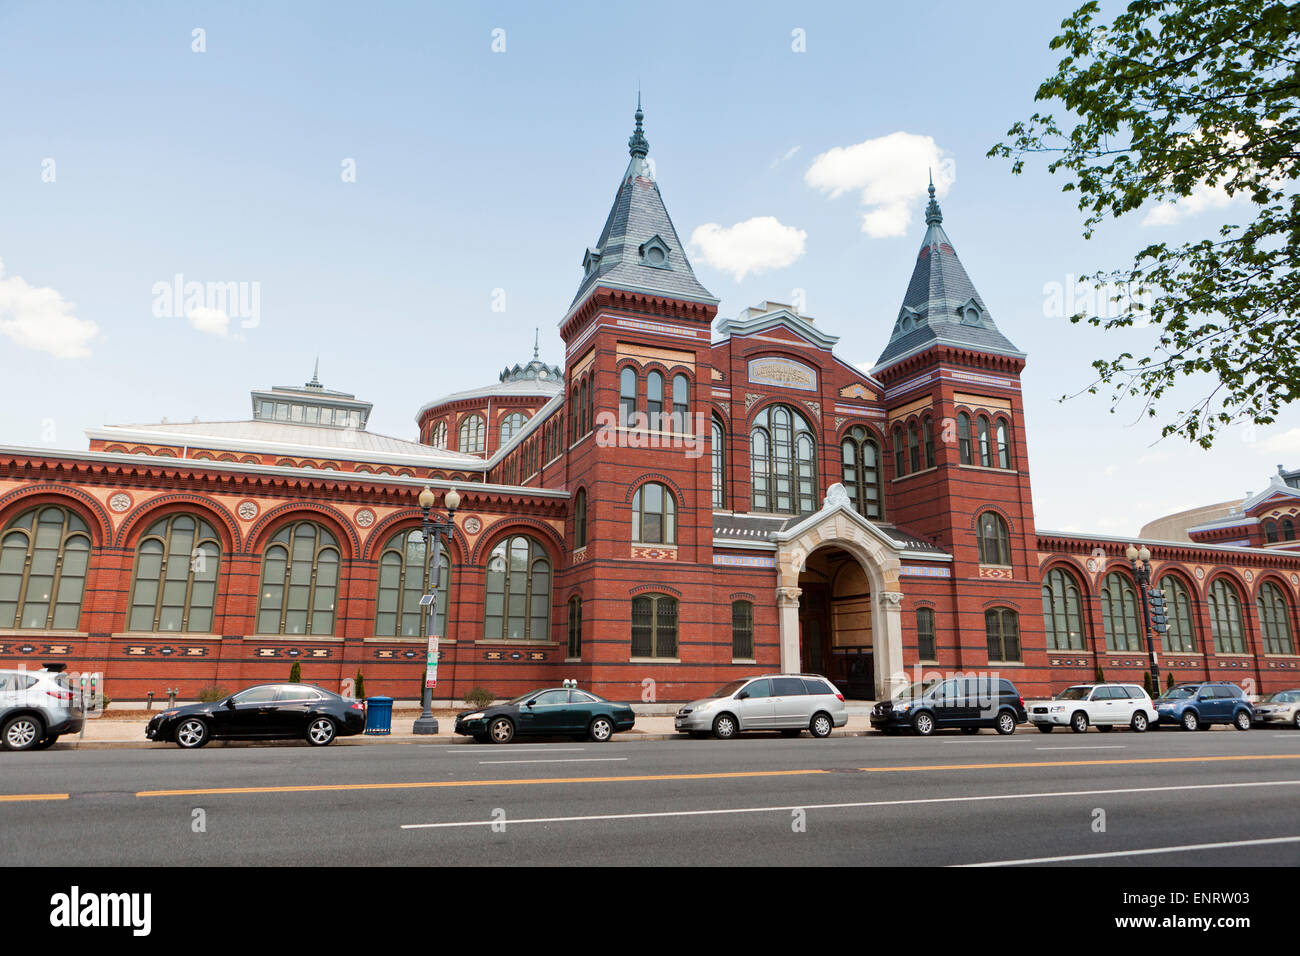 Smithsonian Arts and Industries museum building - Washington, DC USA - Stock Image